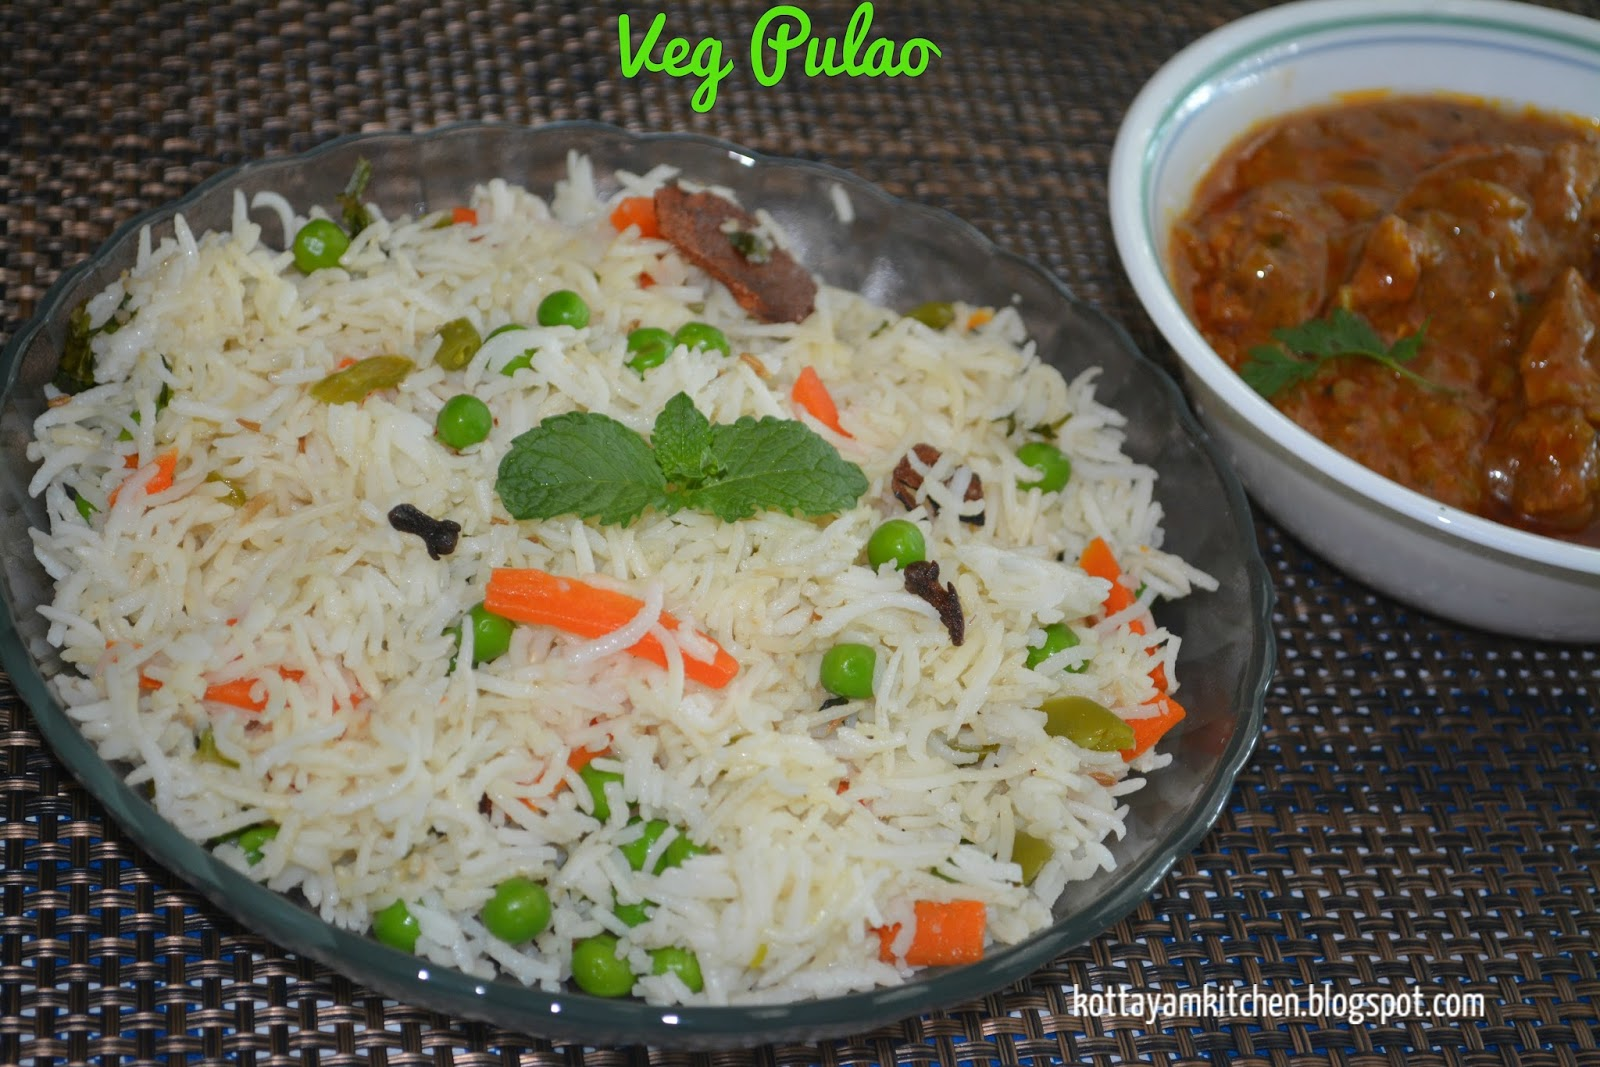 Veg pulao recipevegetable pulao recipekids lunch box ideas recipe written by kottayam kitchen on sunday july 26 2015 july 26 2015 forumfinder Image collections